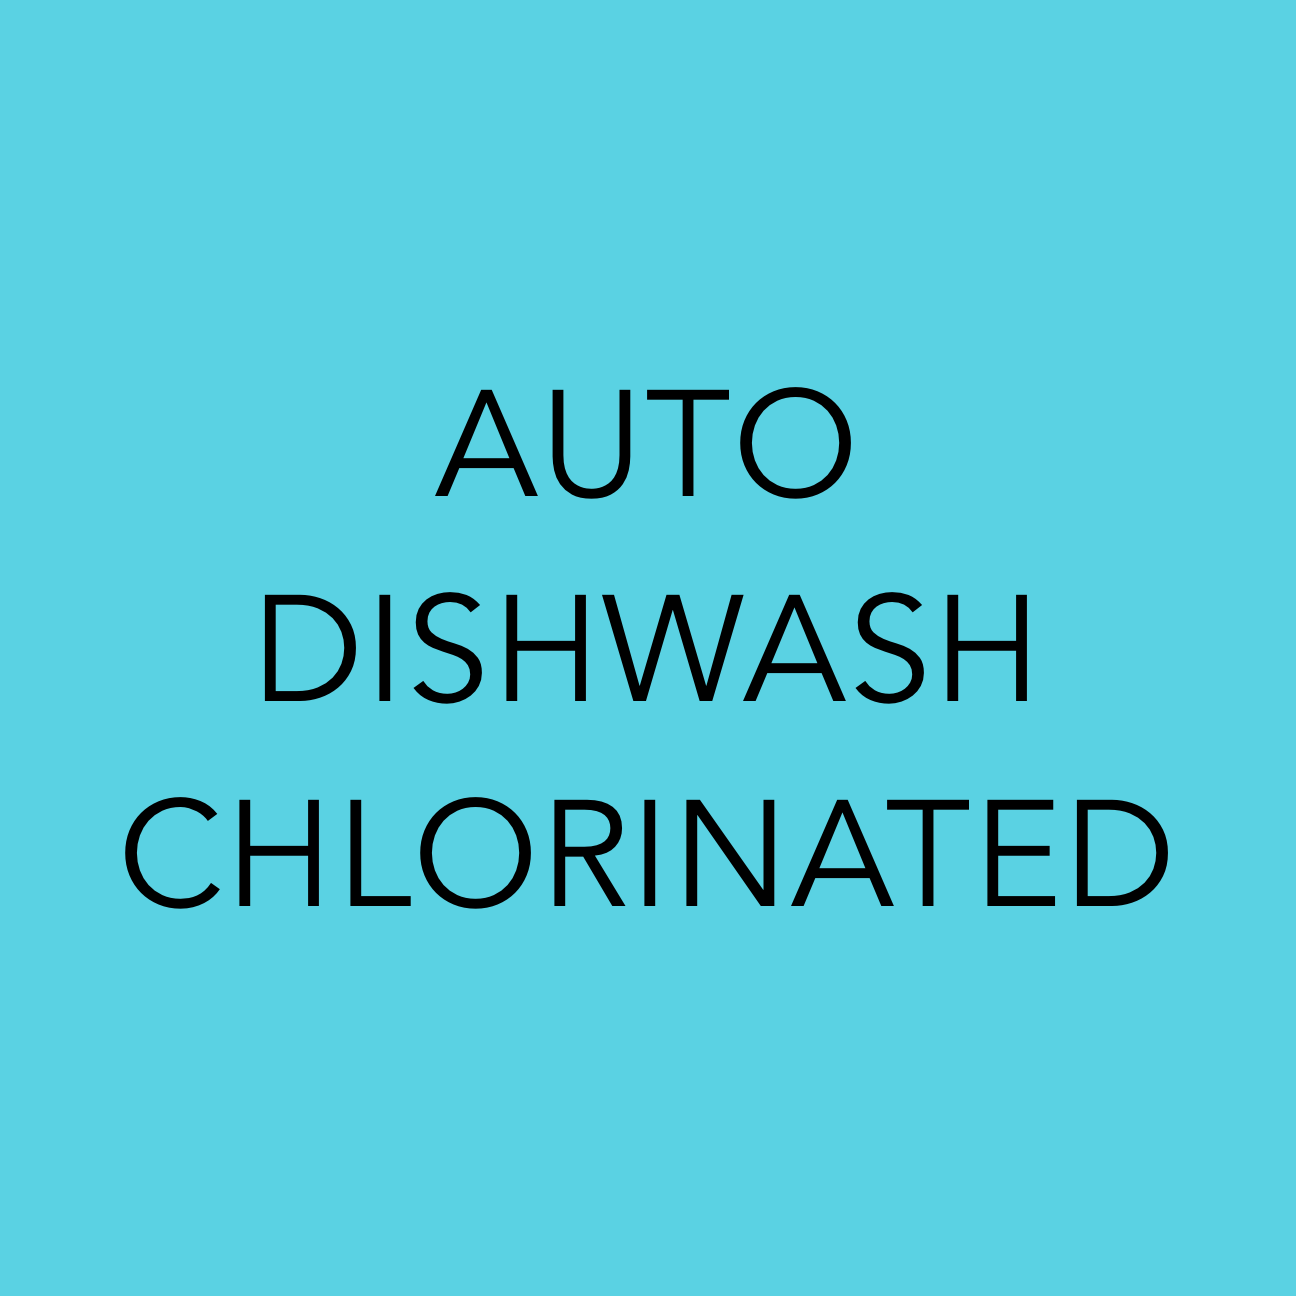 Auto Dishwash Chlorinated